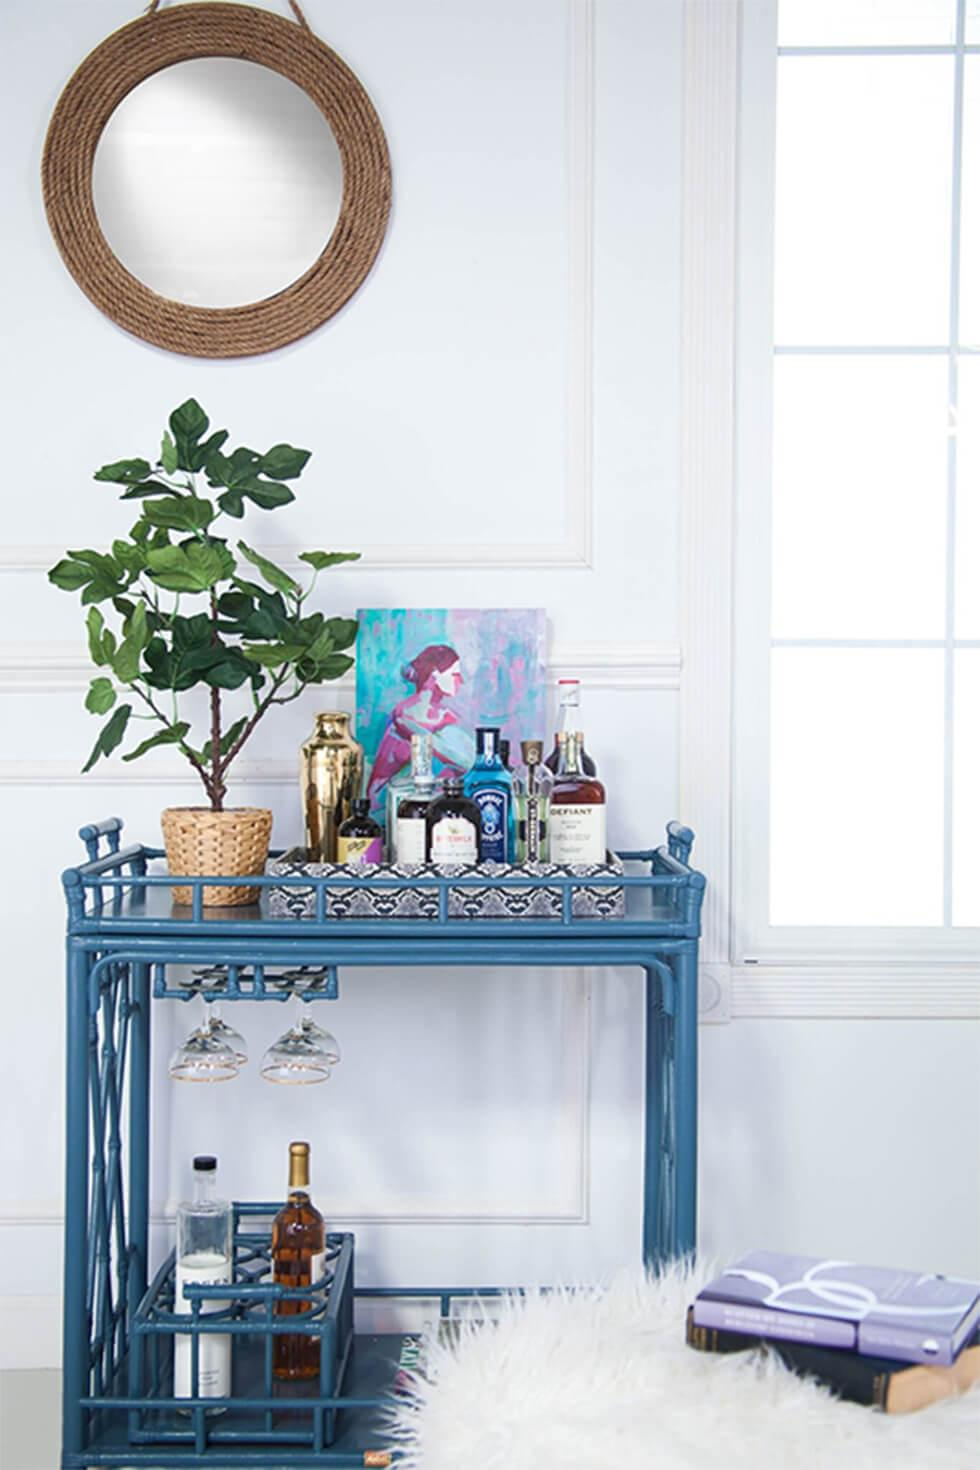 Elegant blue bar cart in a white room with art and plants